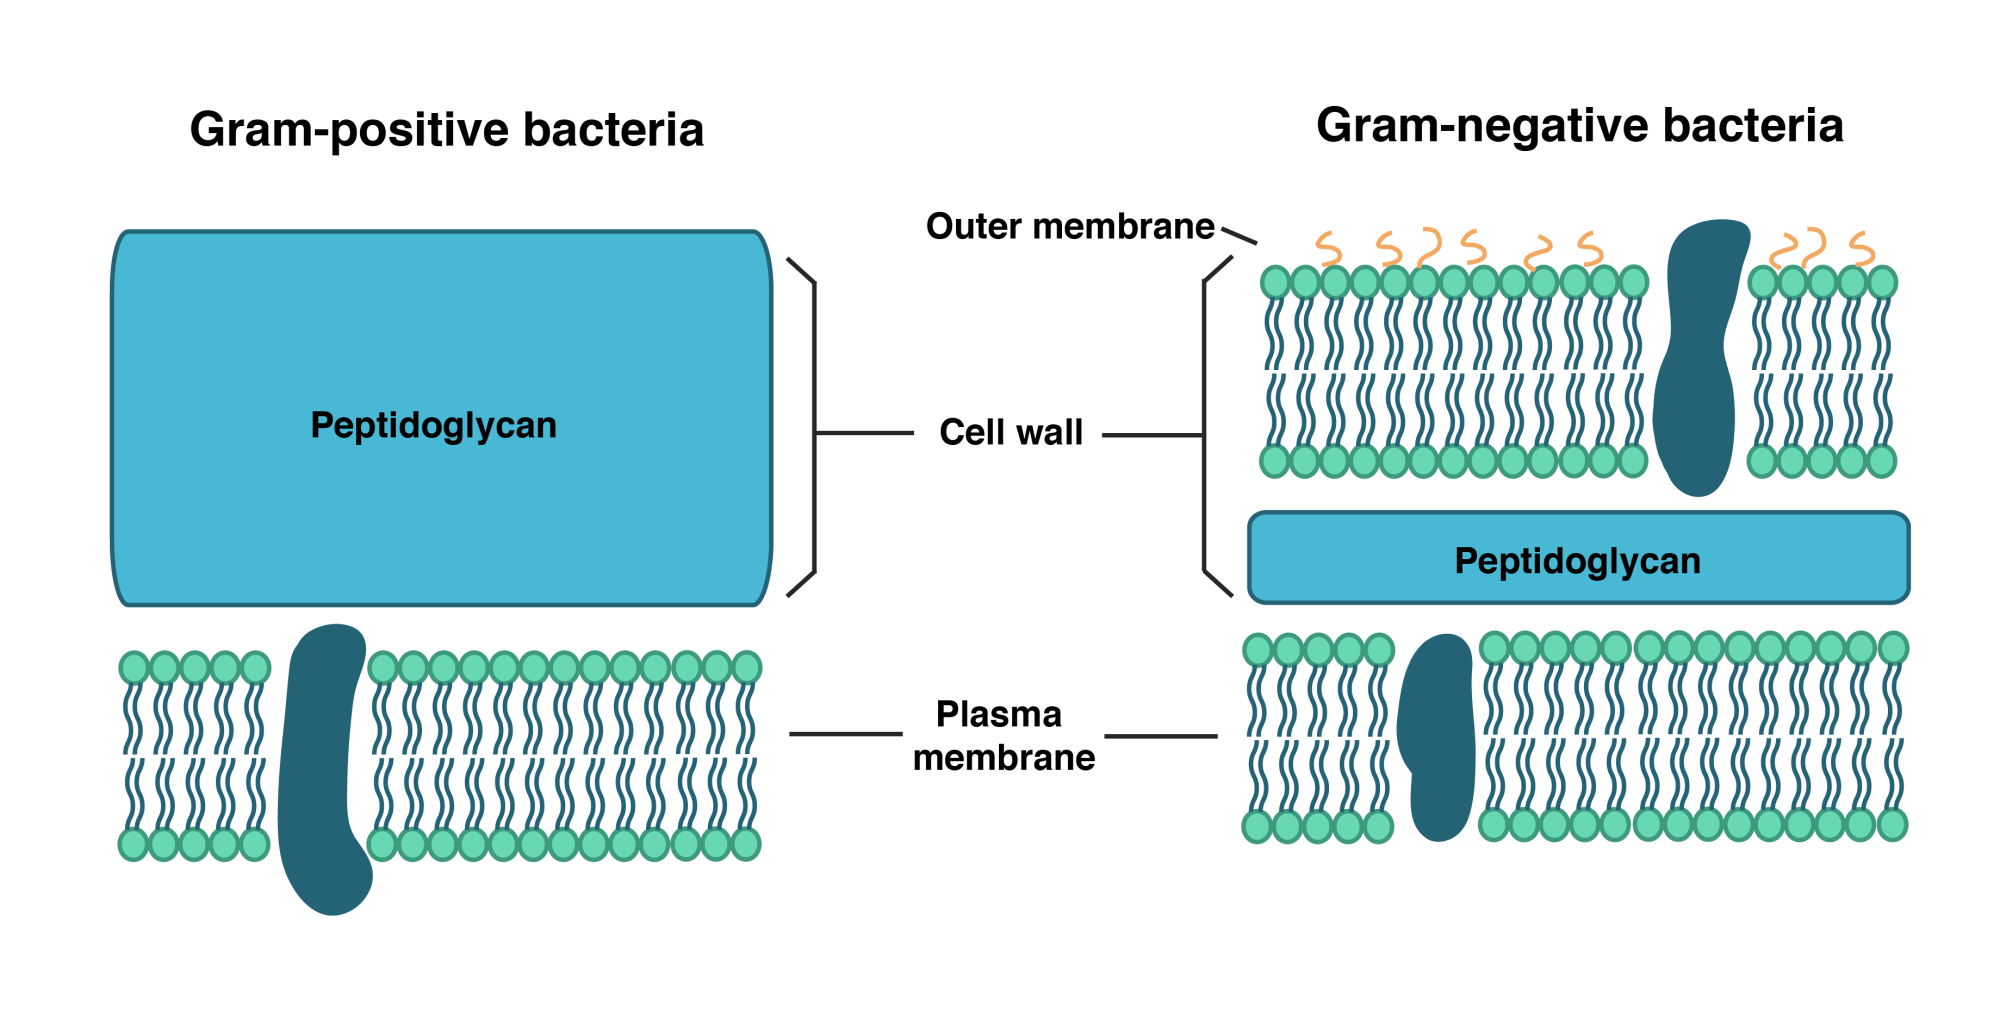 hight resolution of gram positive bacteria have an inner plasma membrane and a thick cell wall composed of